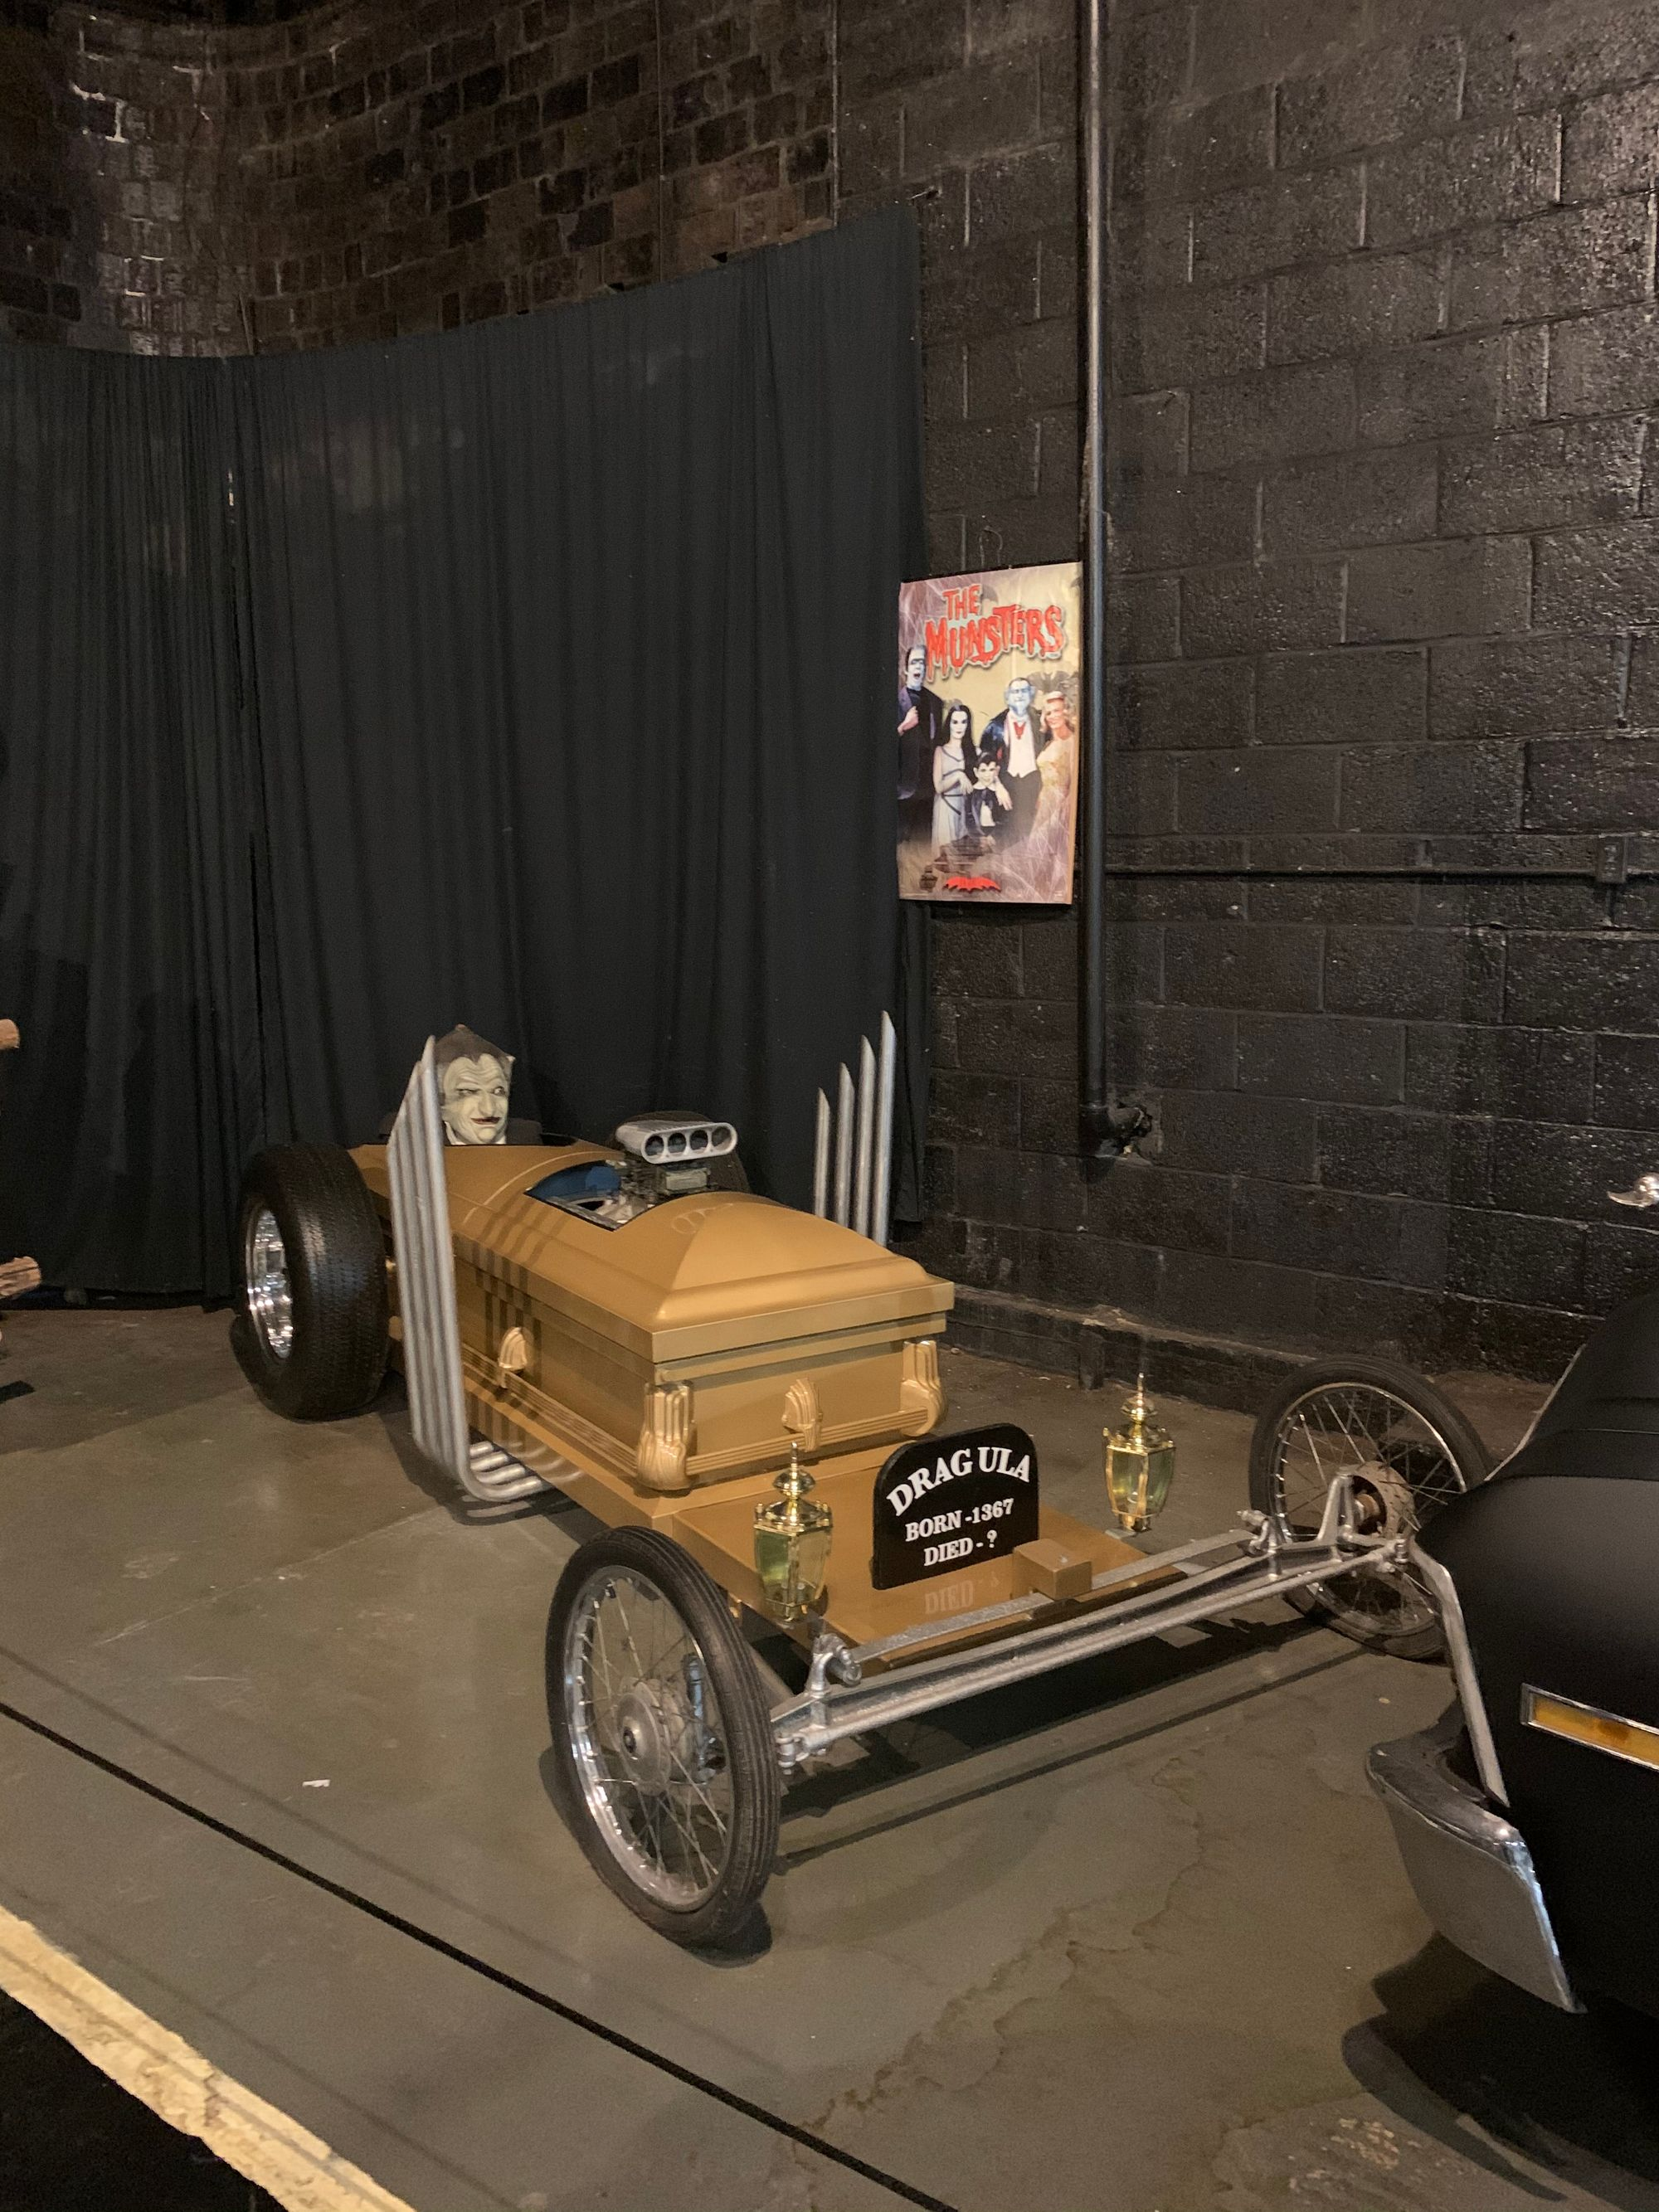 """<img src=""""dragula.jpg"""" alt=""""A replica of the Dragula from The Munsters"""">"""